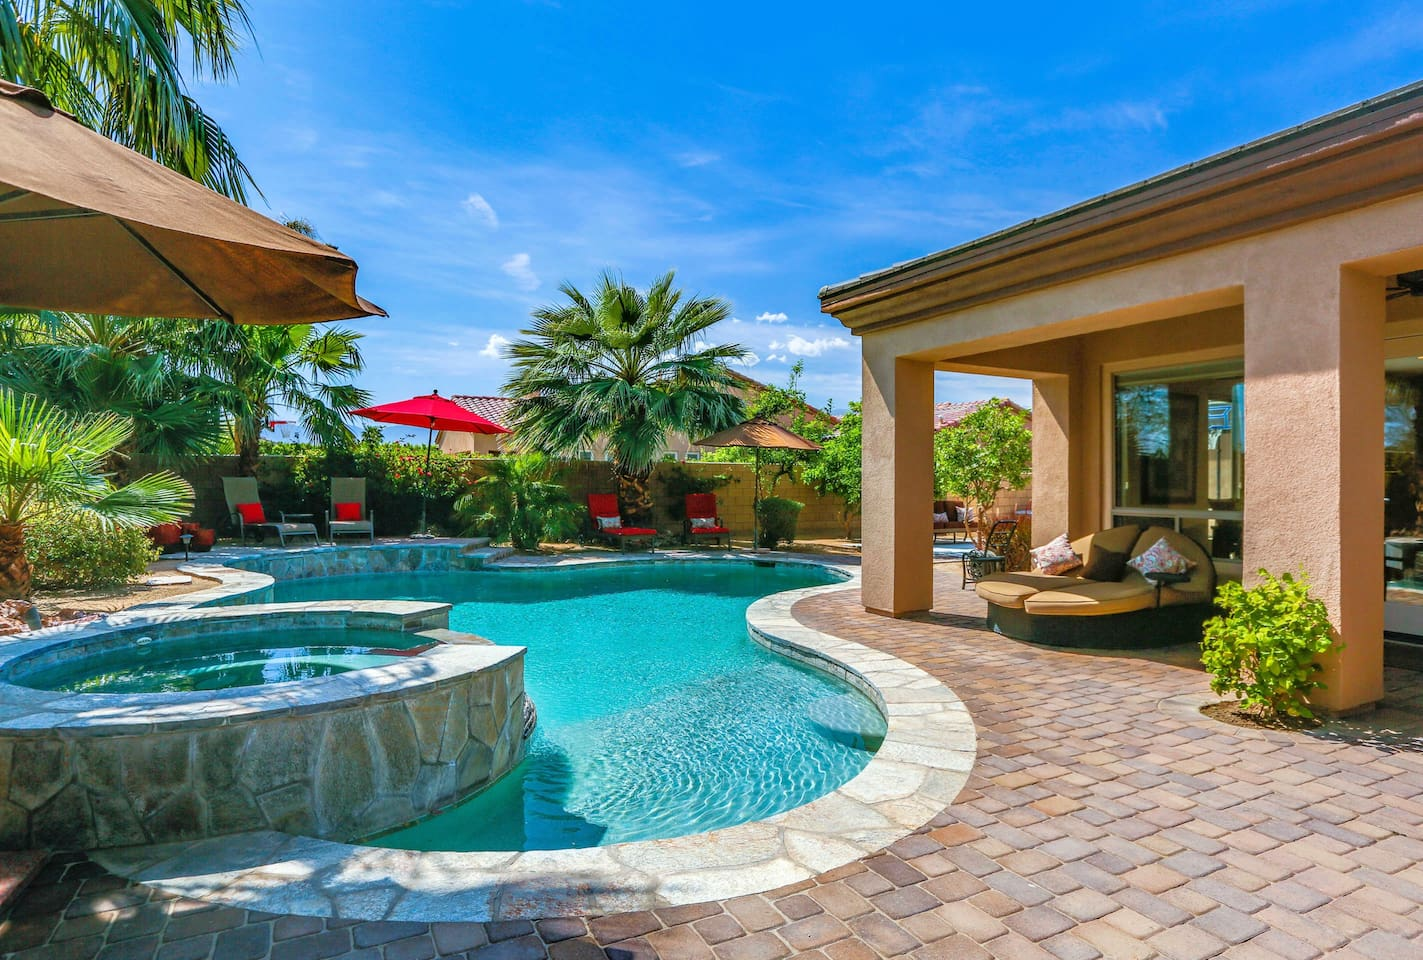 Welcome! This tropical getaway is professionally managed by TurnKey Vacation Rentals.